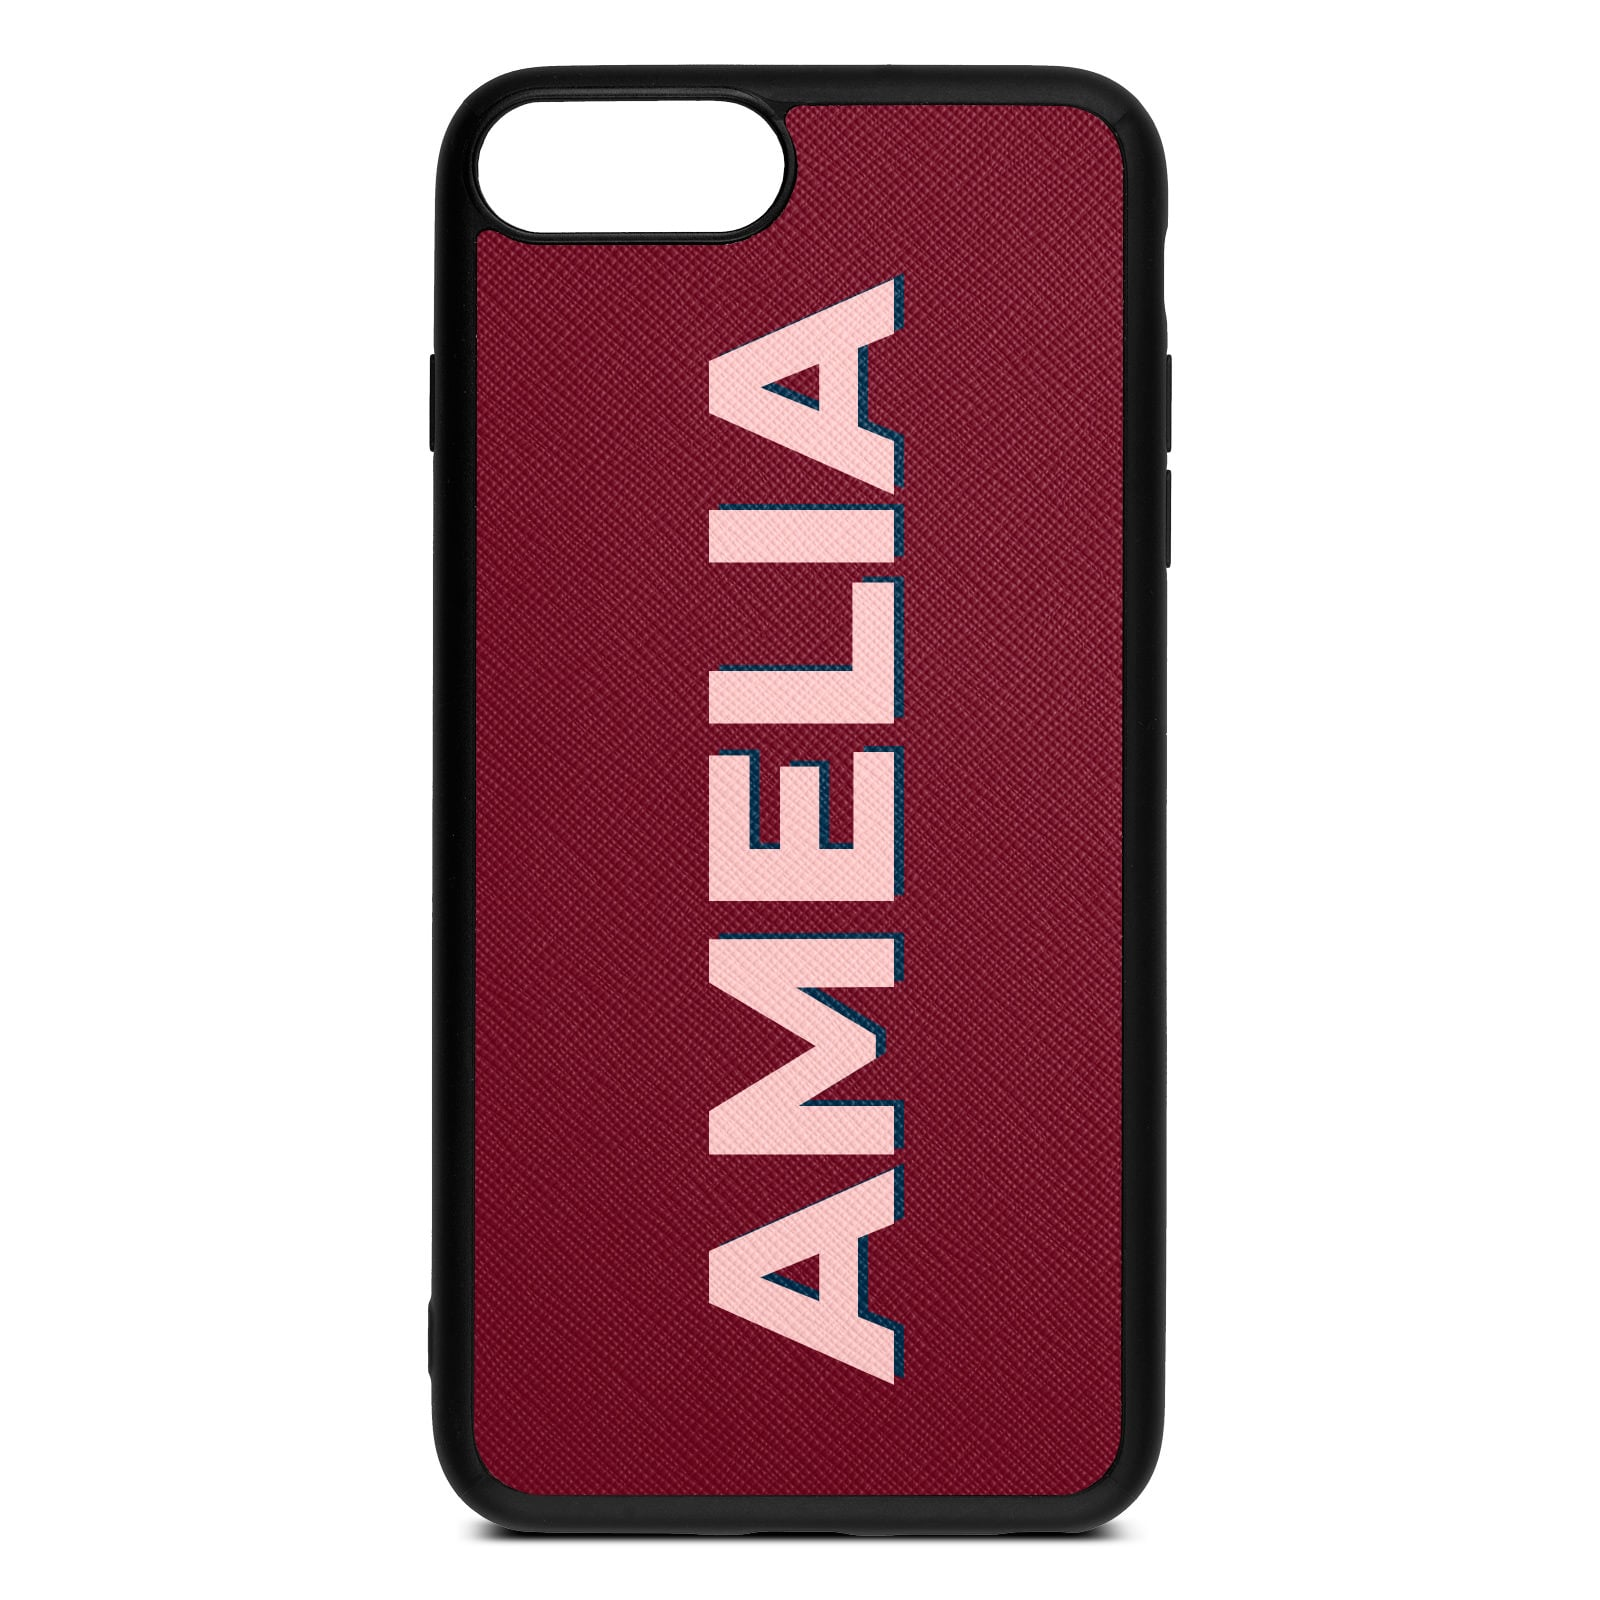 Personalised Dark Red Saffiano Leather iPhone 8 Plus Case